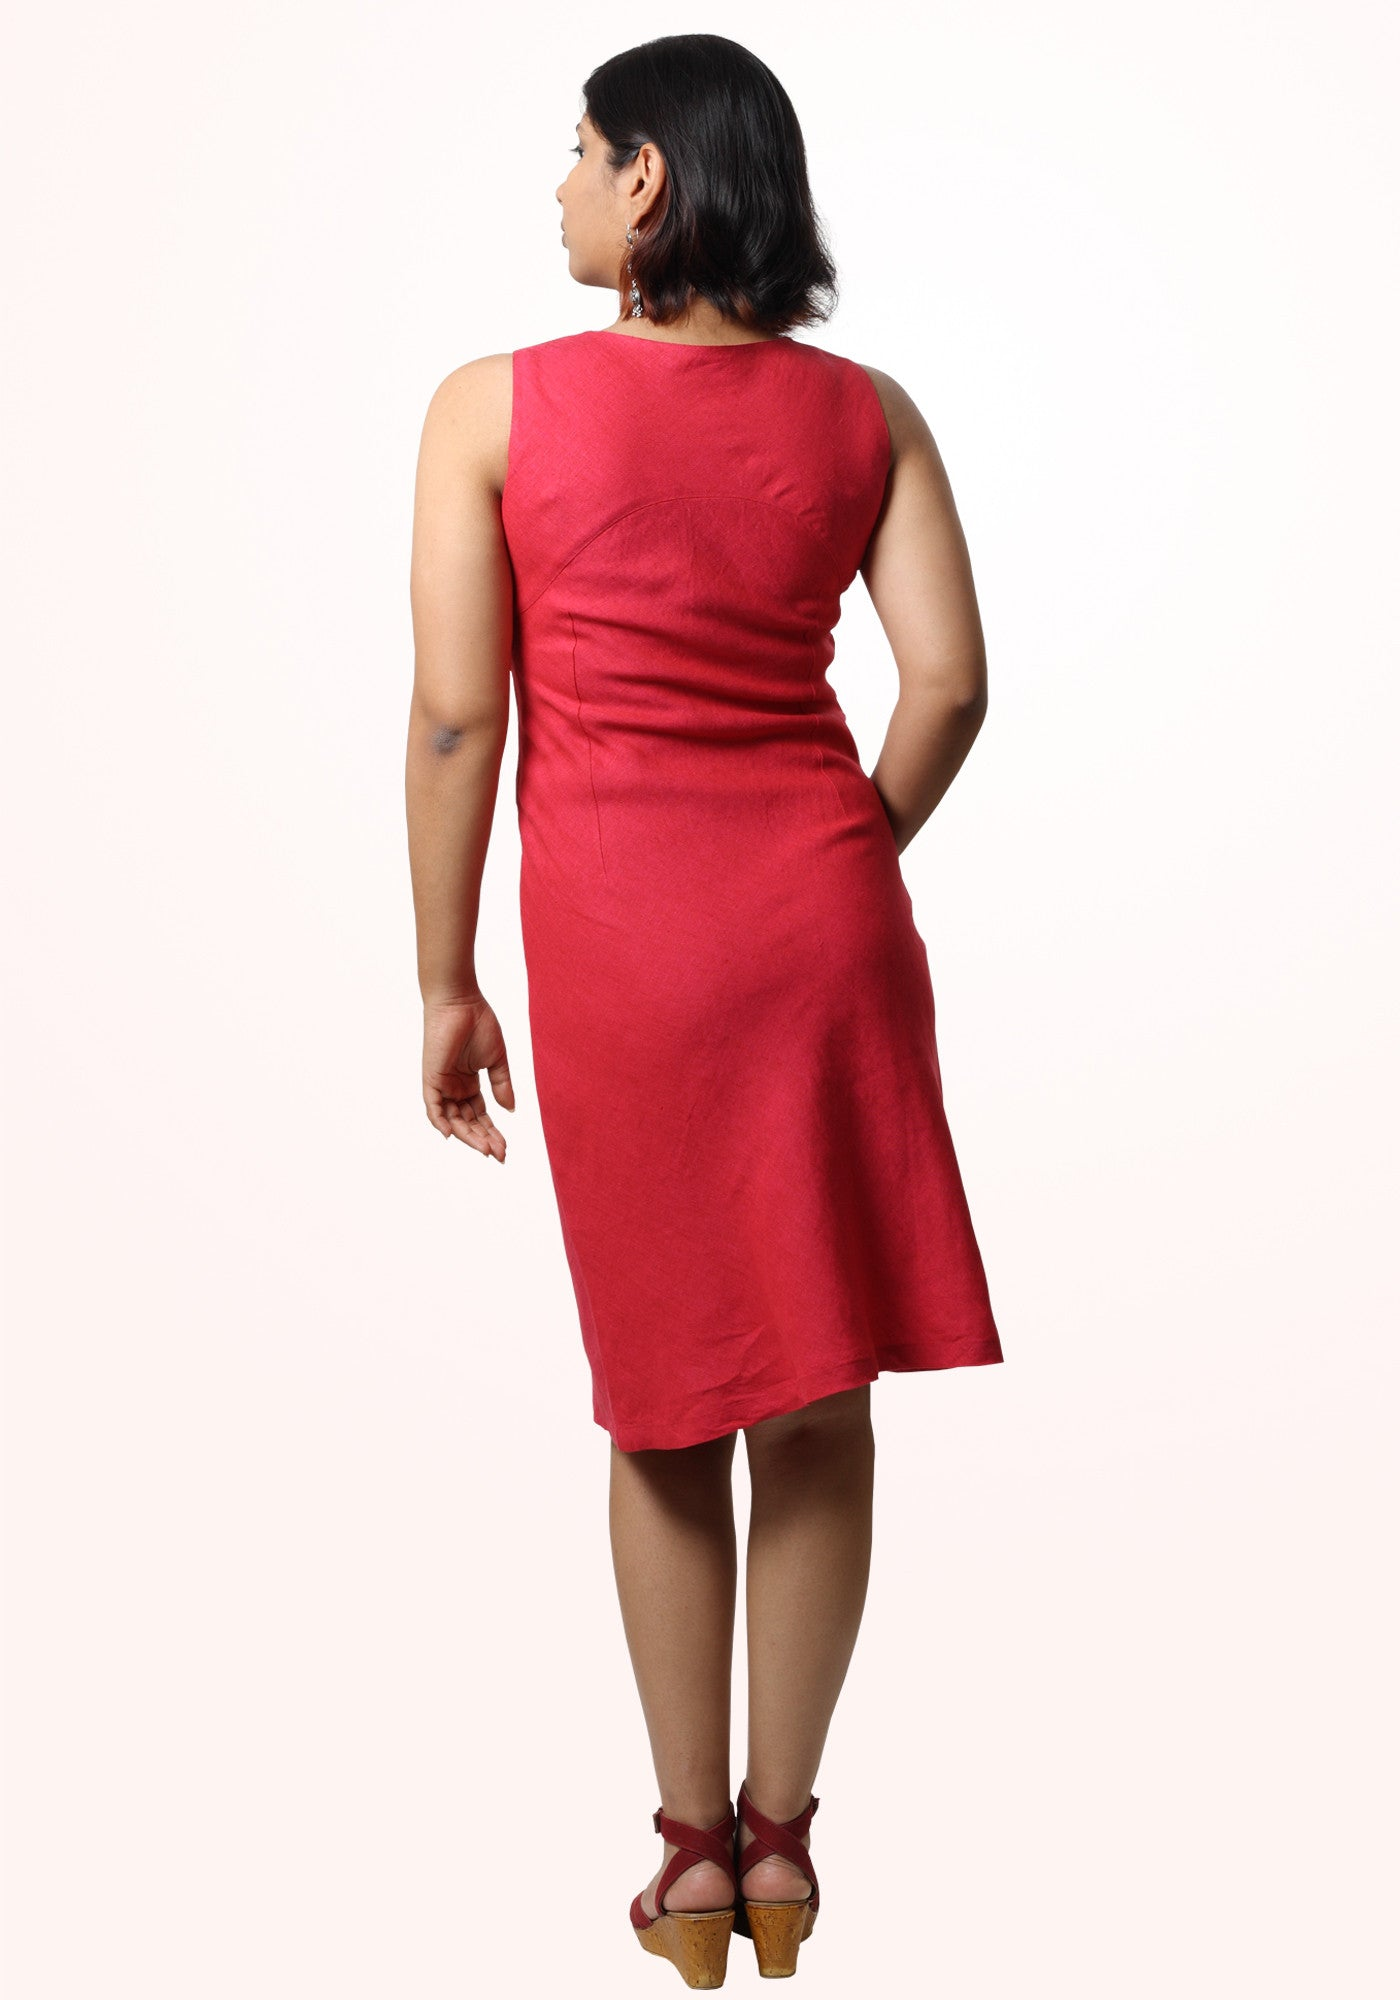 Pamela Short Dress In Fuchsia Linen - MINC ecofashion